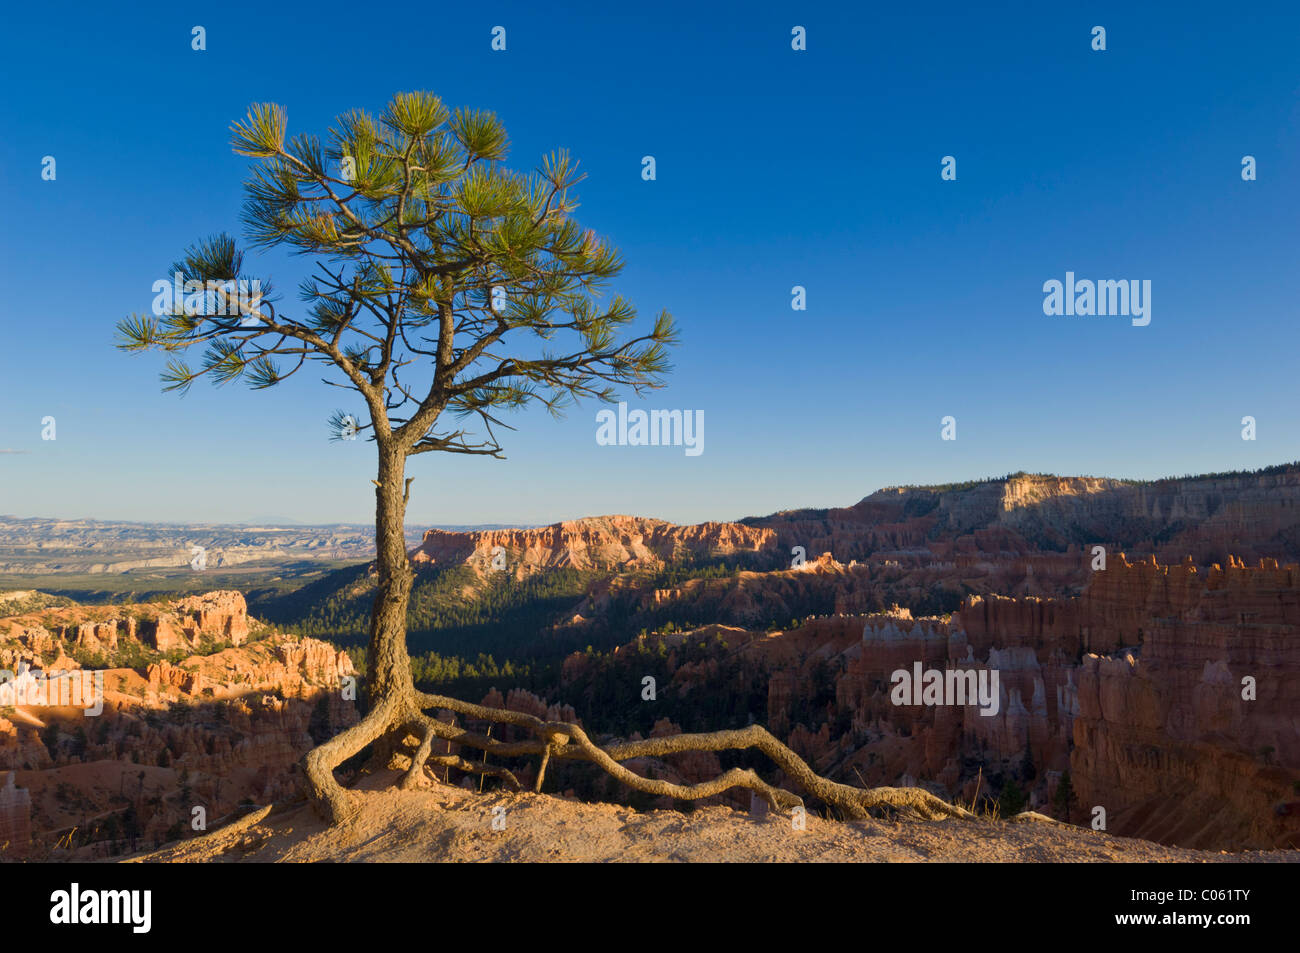 Limber pine, Pinus flexilis at the edge of Bryce Amphitheater Sunrise point, Bryce Canyon National Park, Utah, USA - Stock Image